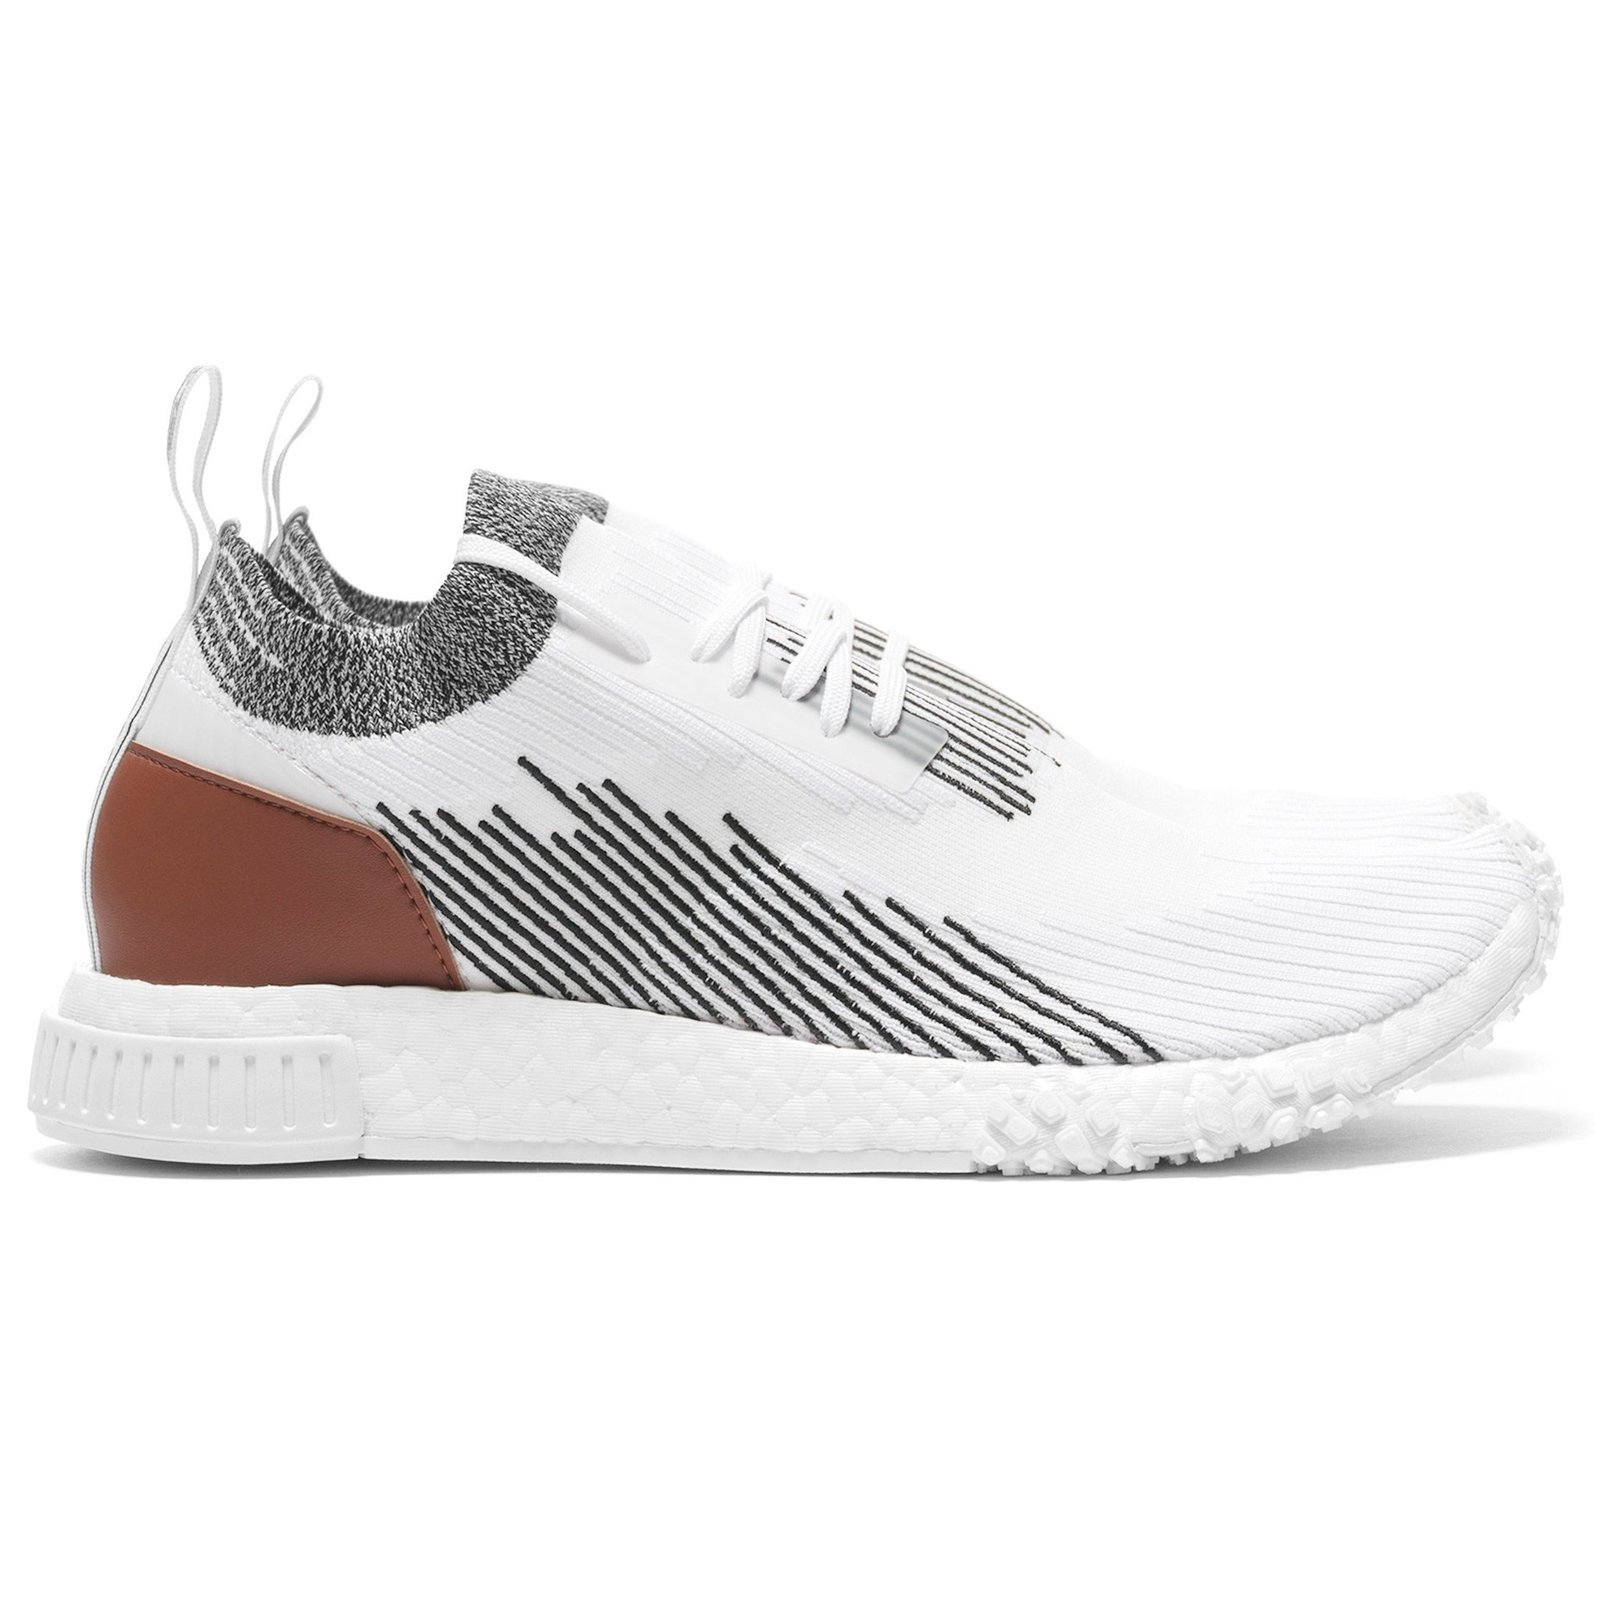 544d882696756 Adidas NMD Racer x Whitaker Car Club and 50 similar items